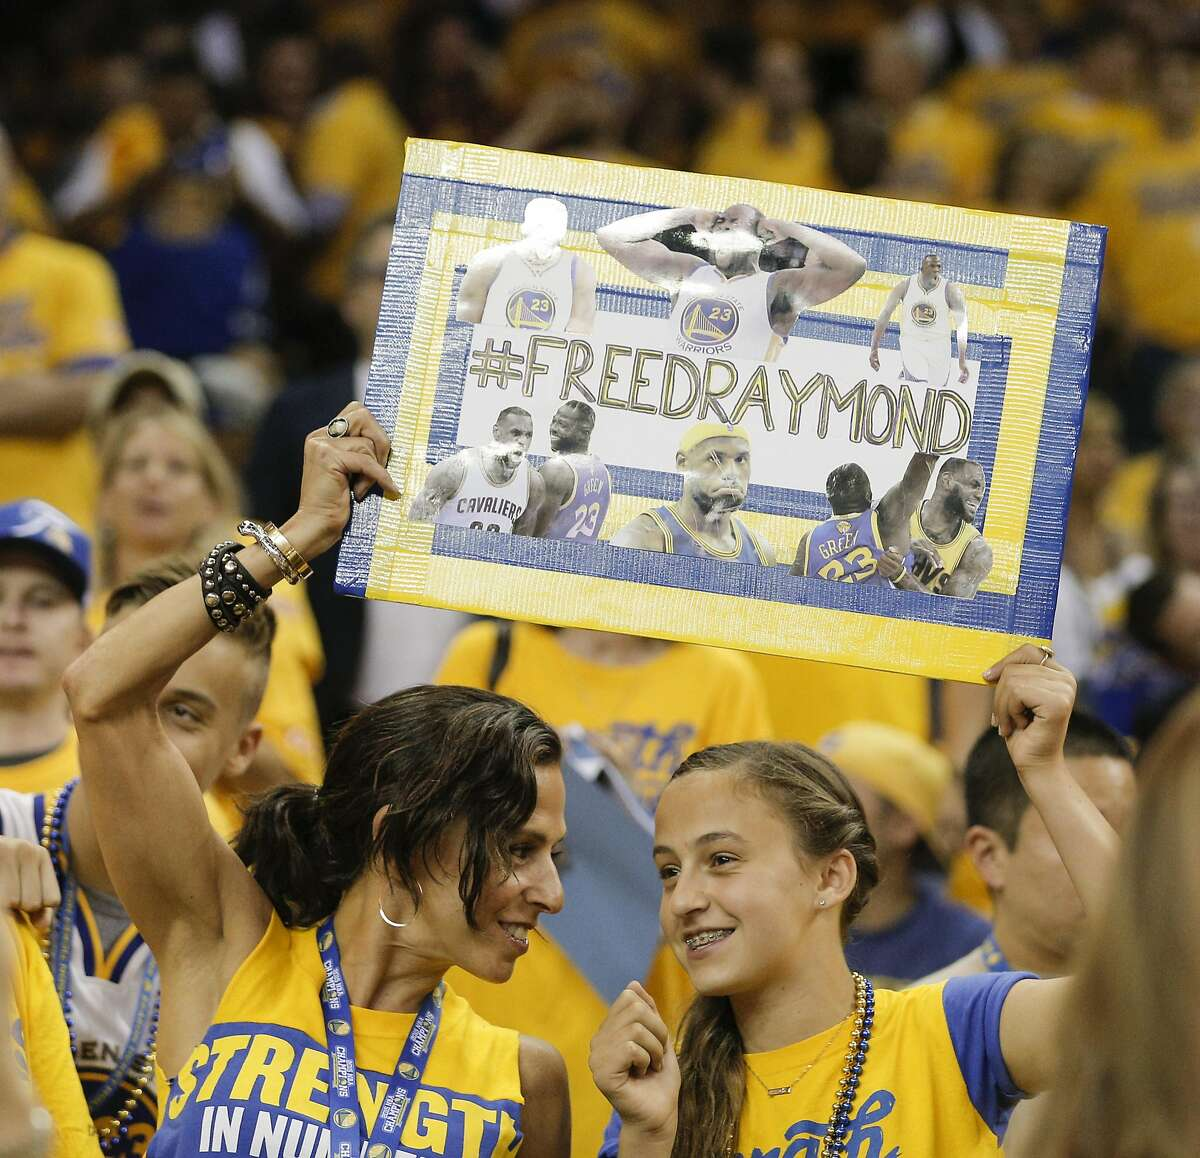 Warriors' fans hold up a #FreeDraymond sign during Game 5 of the NBA Finals at Oracle Arena on Monday, June 13, 2016 in Oakland, Calif.